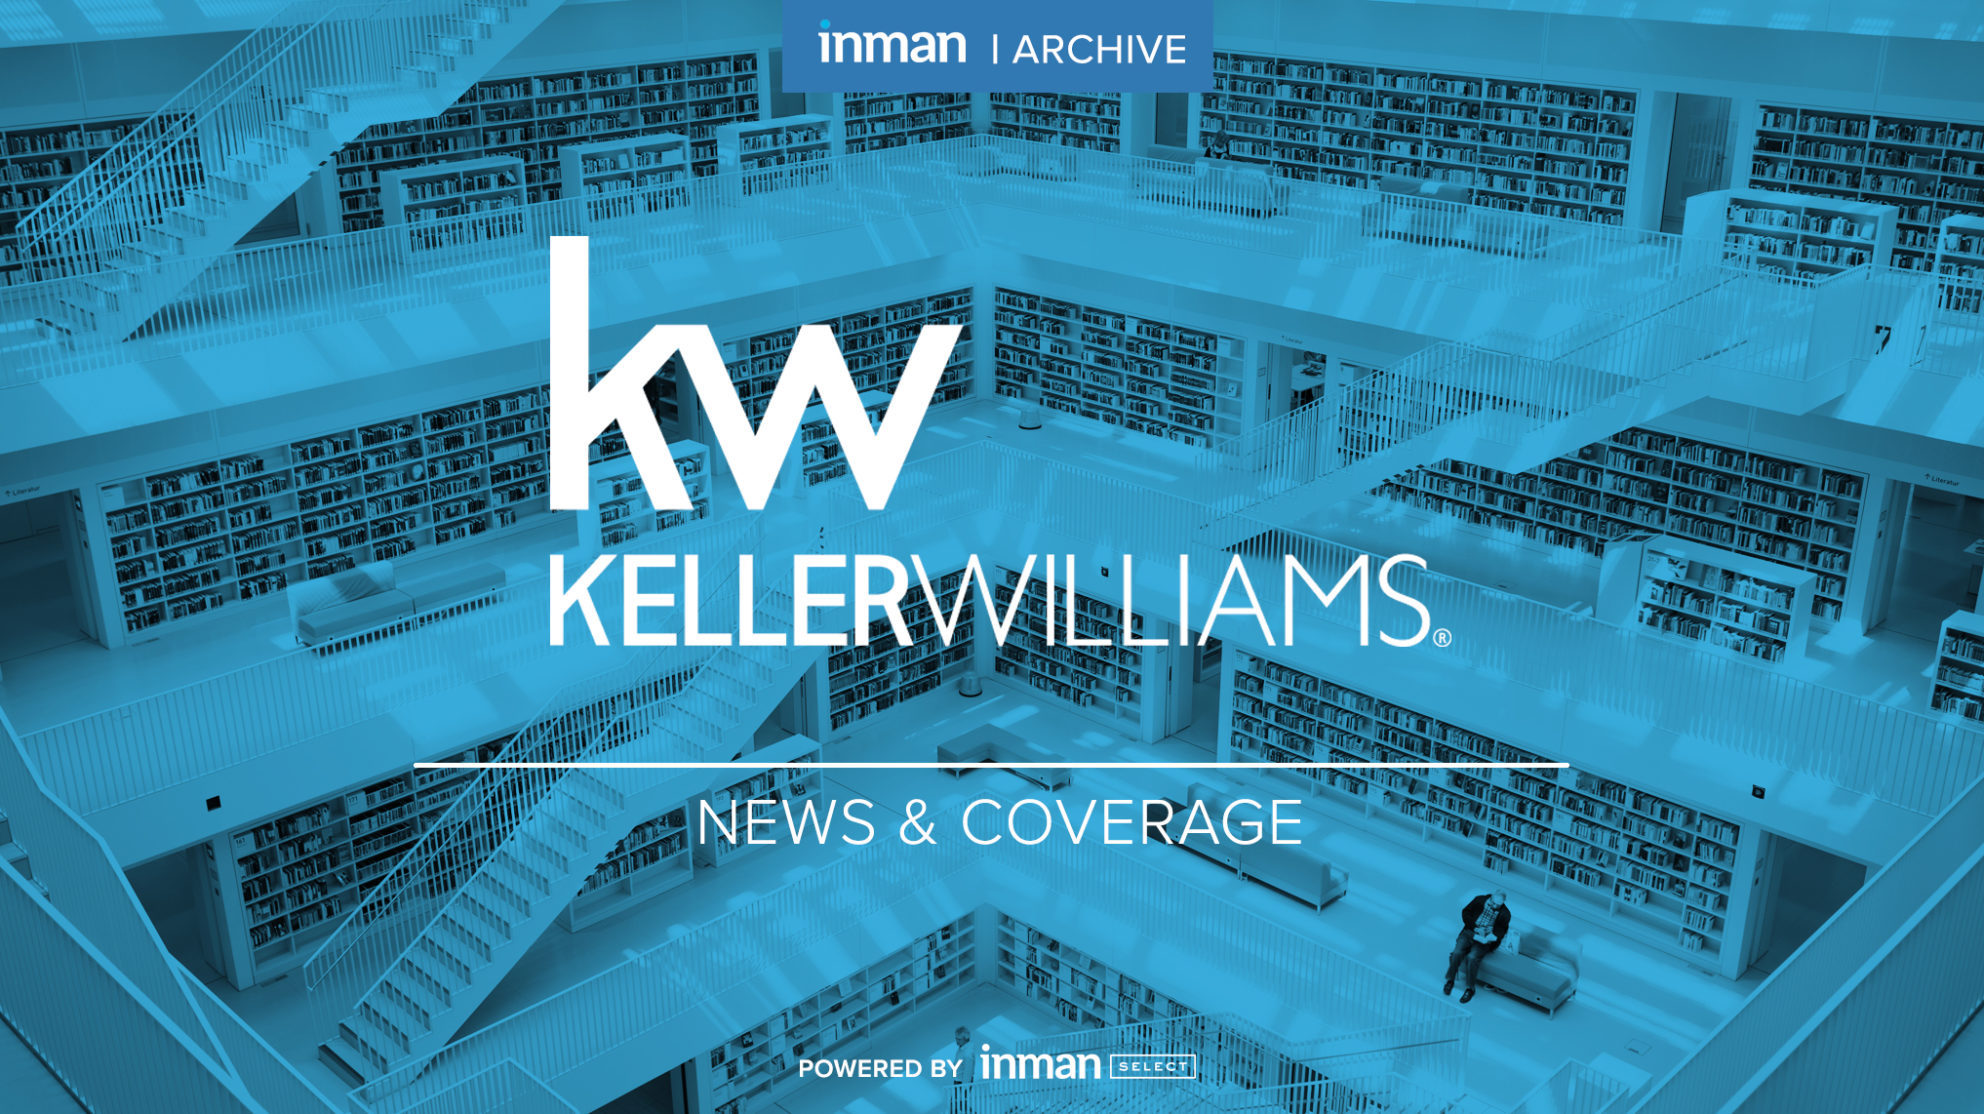 Inman Archive: Keller Williams